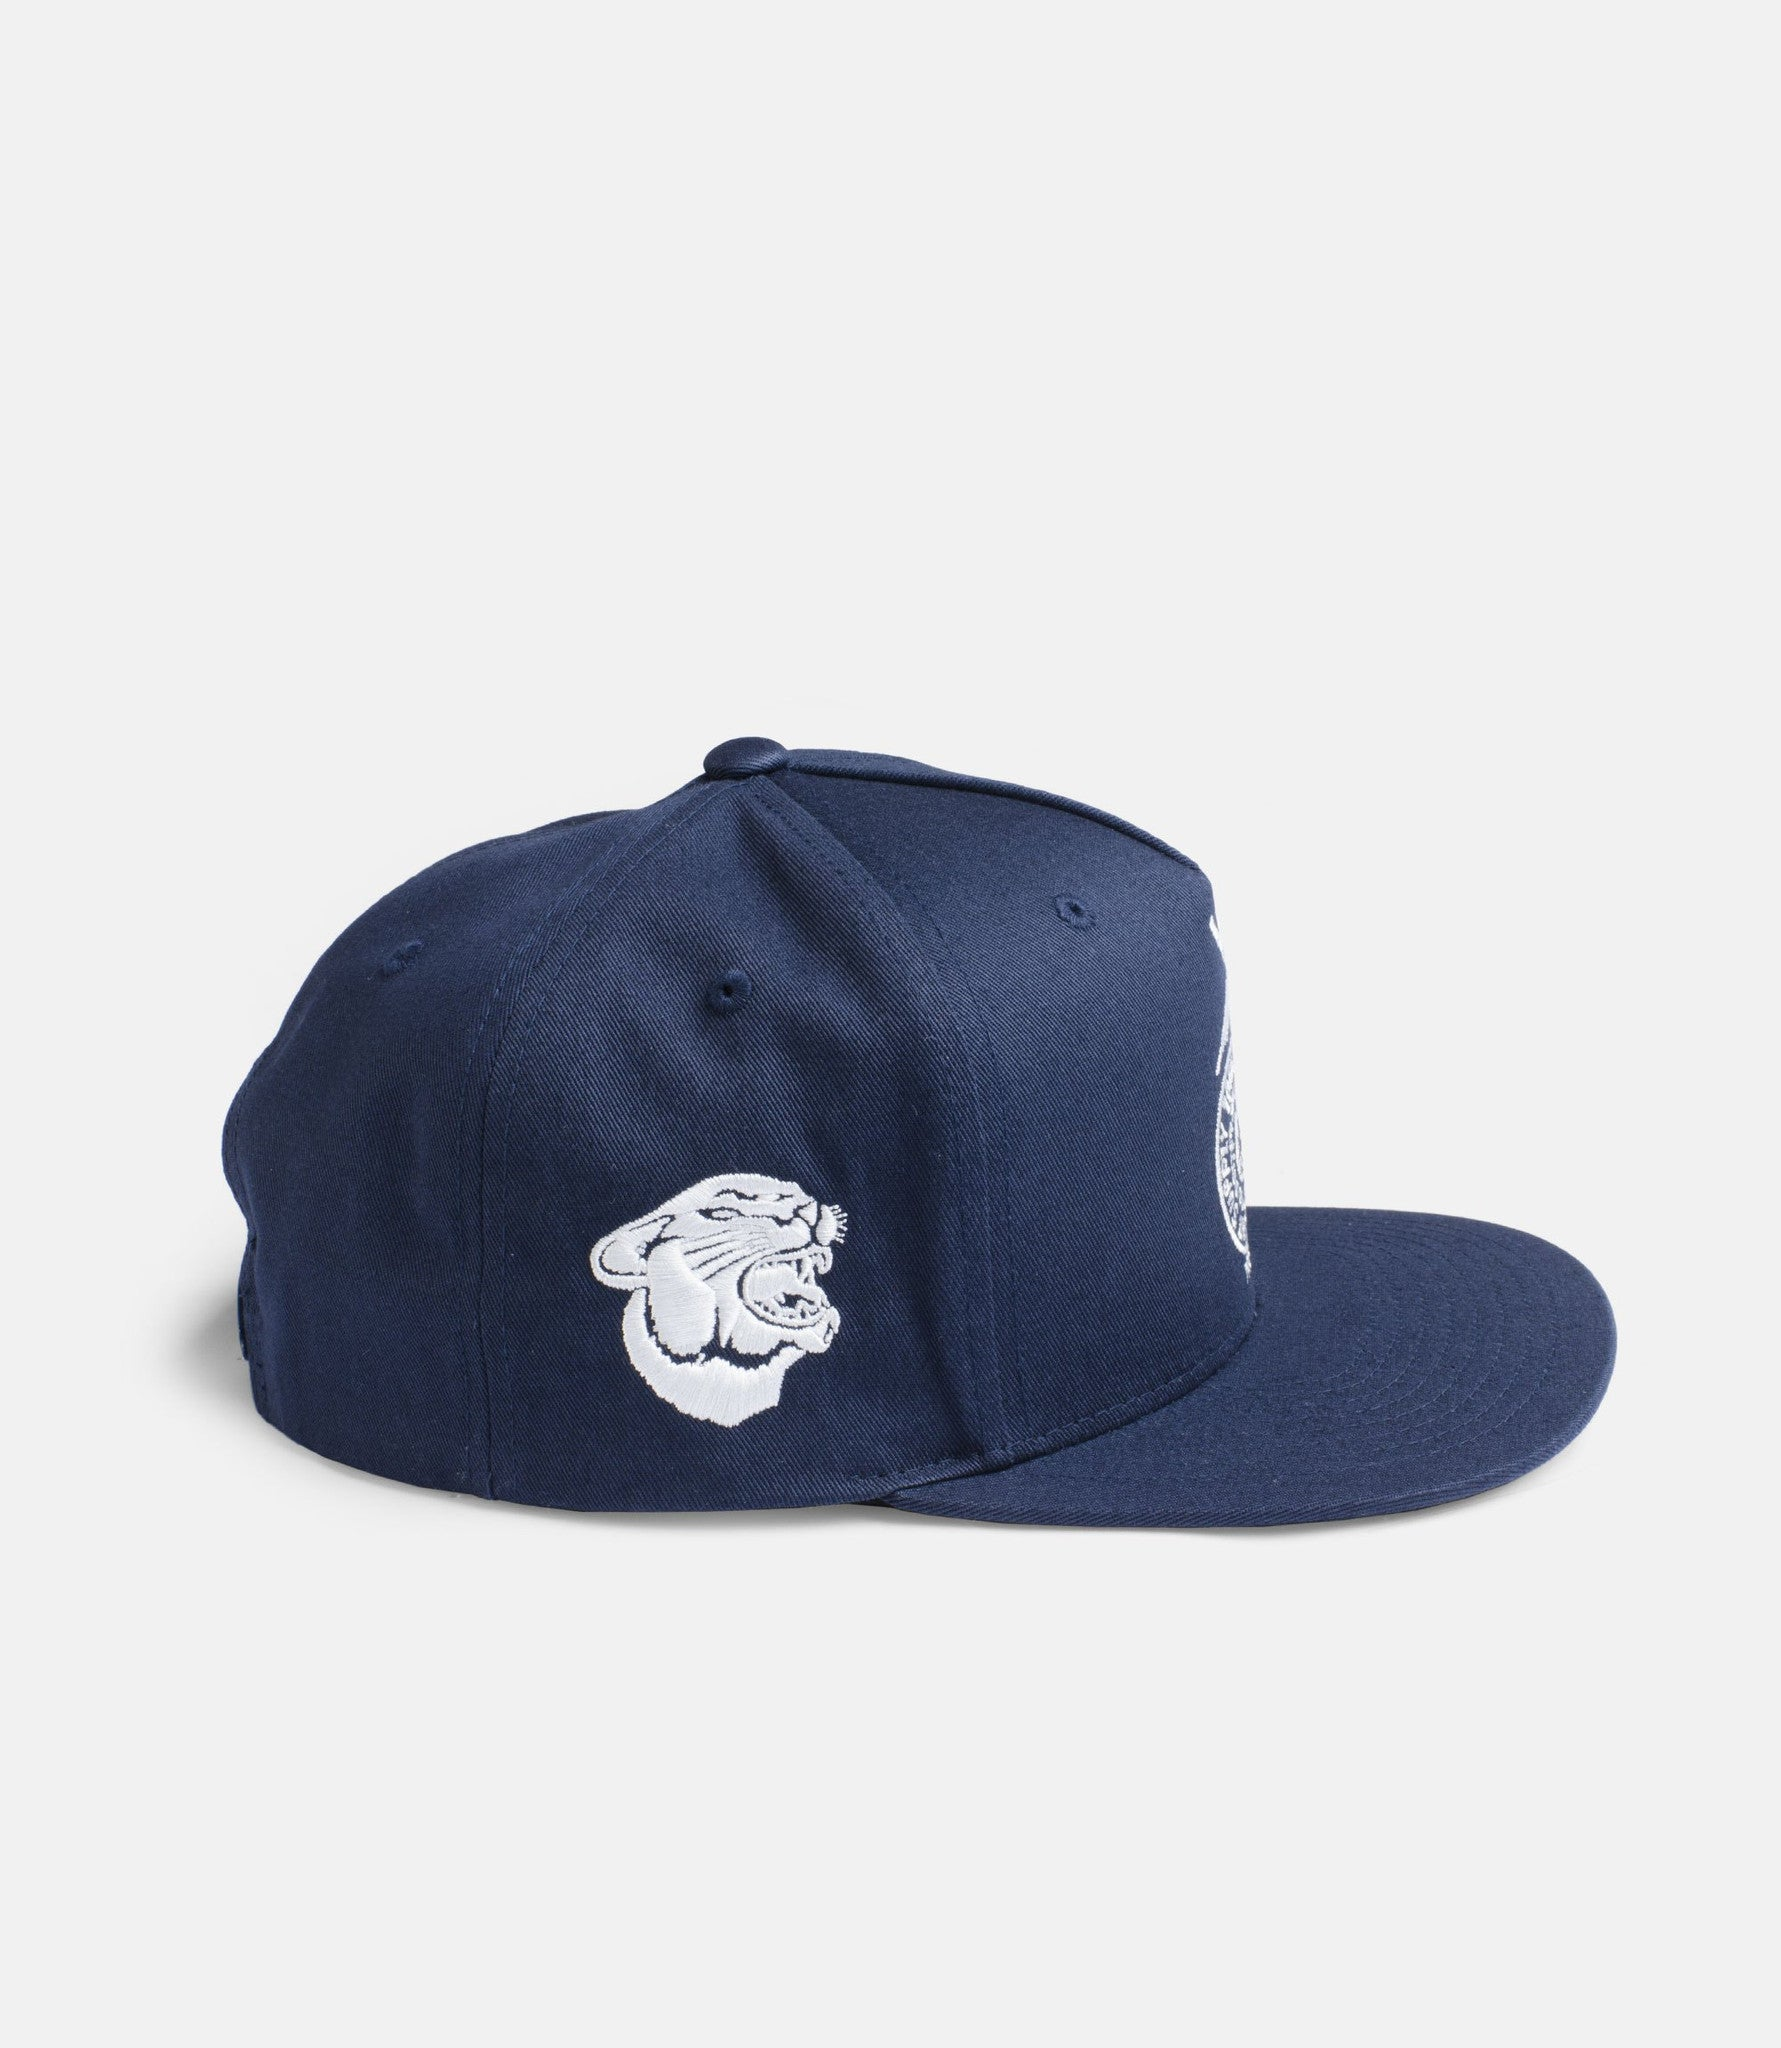 10Deep - Souvenir Snapback, Navy - The Giant Peach - 4